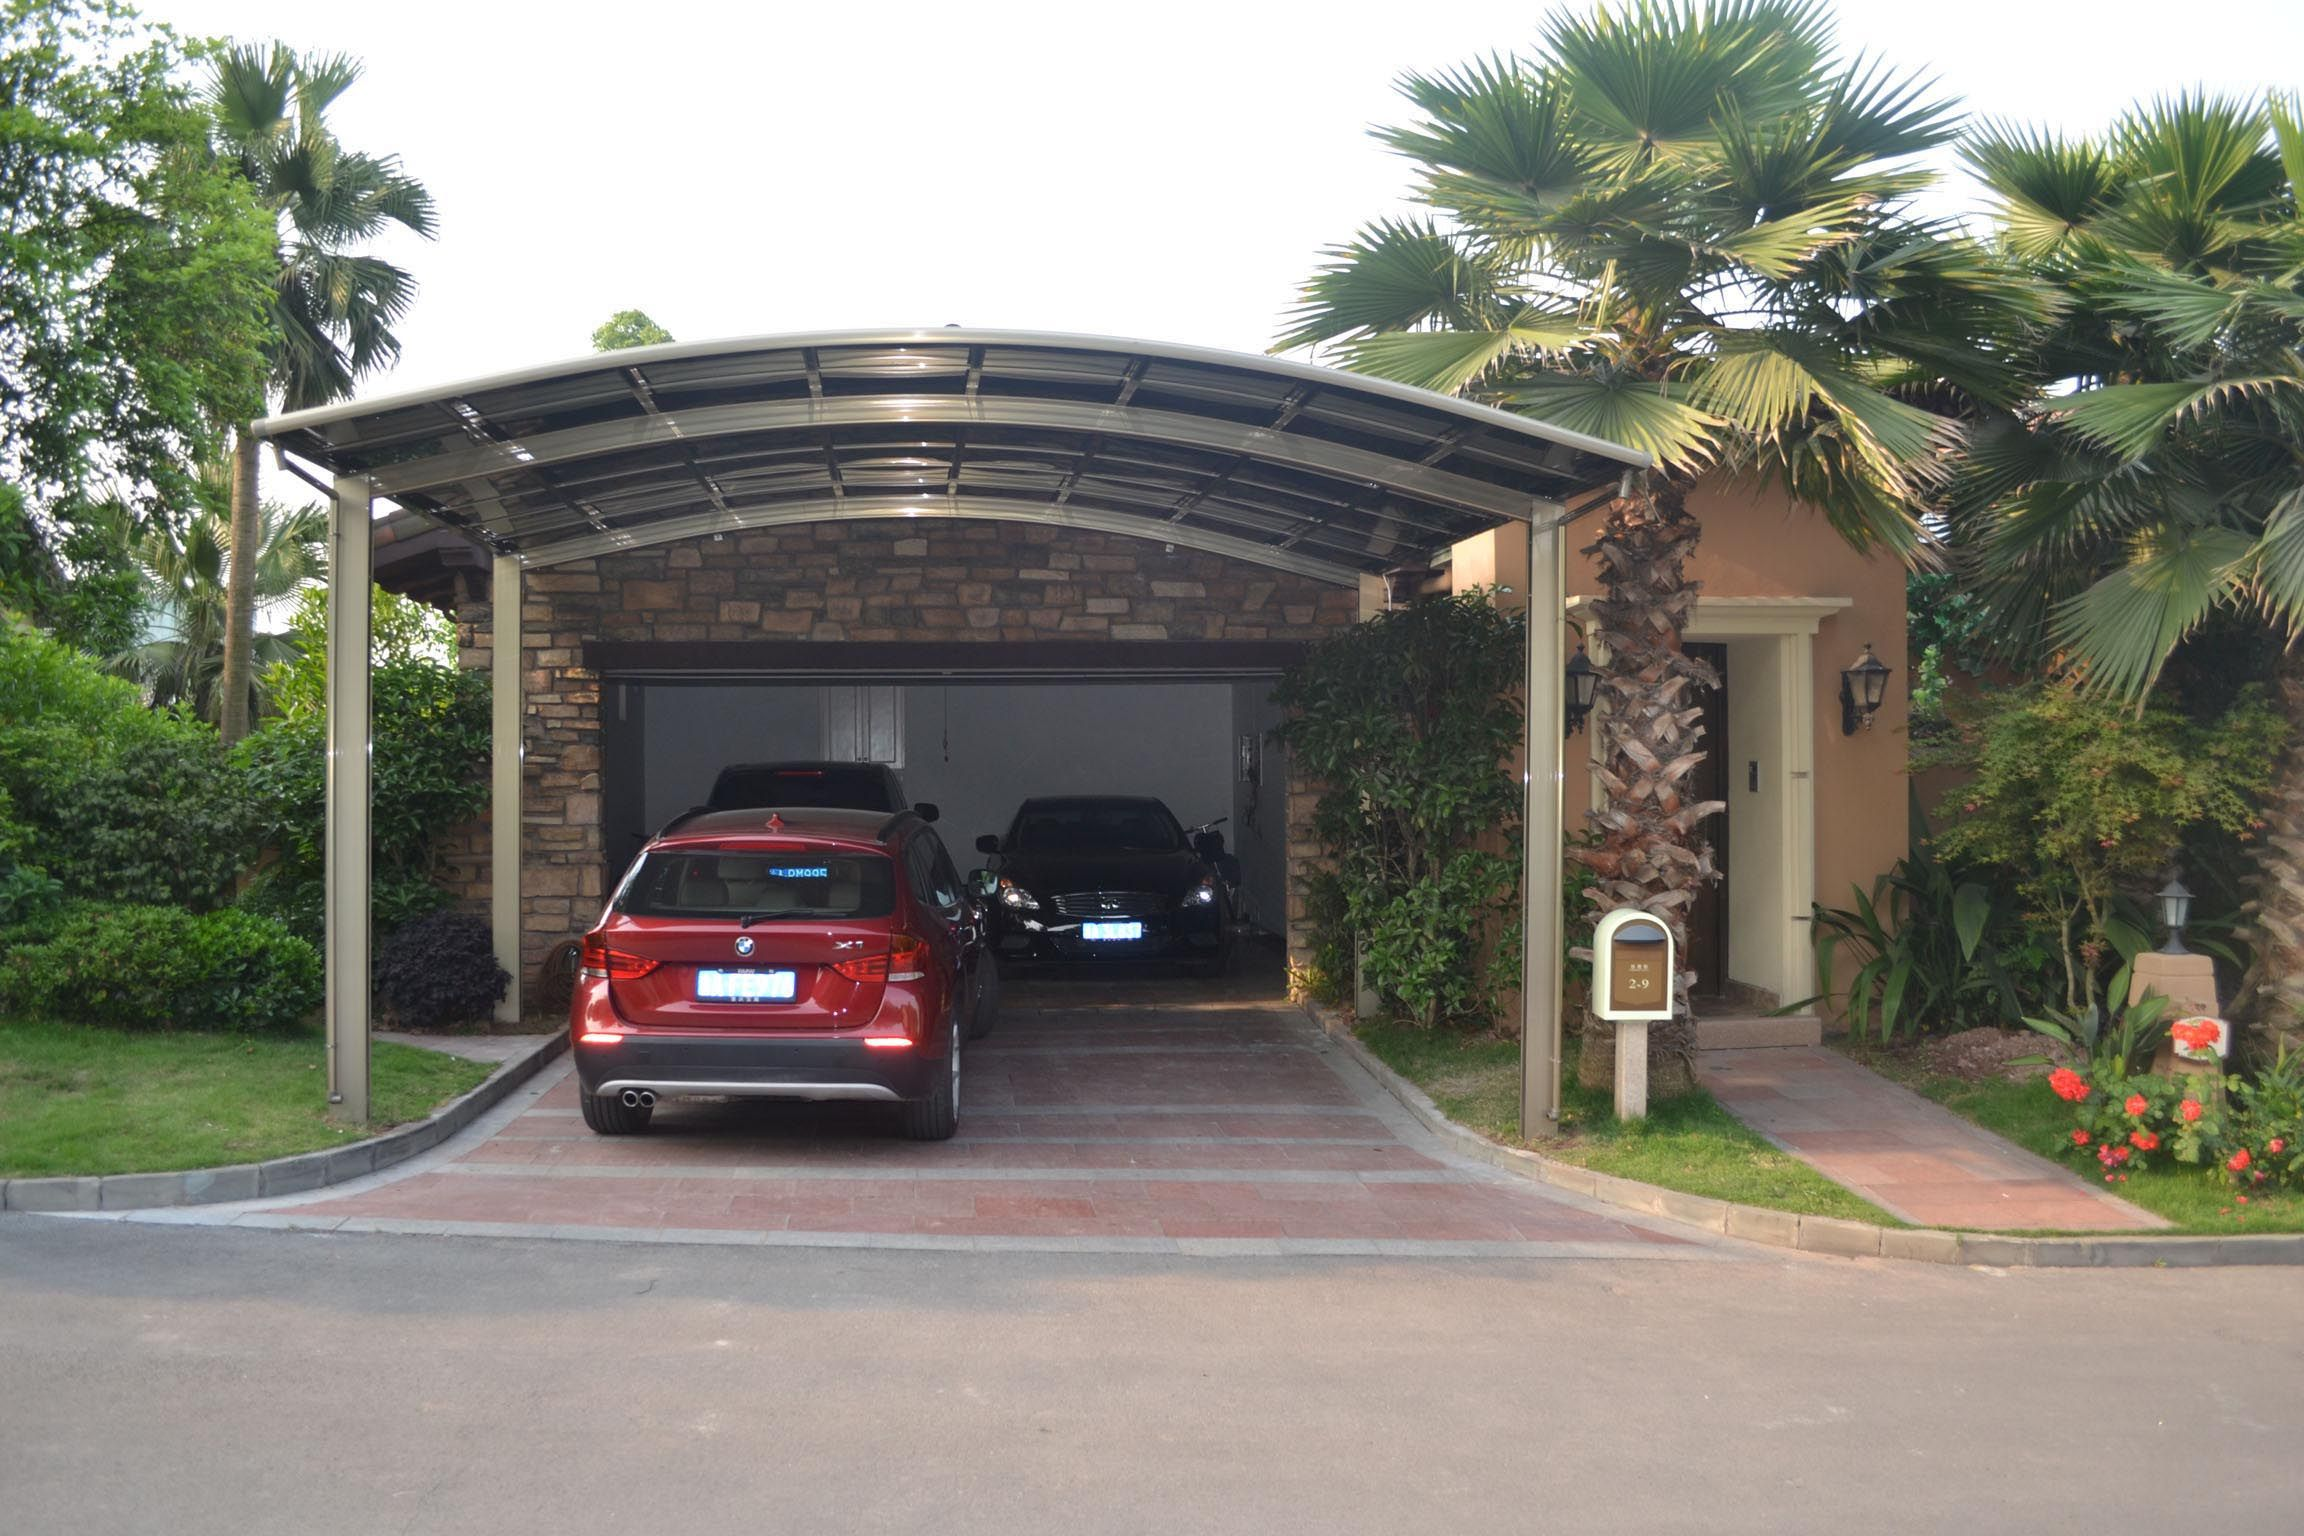 Premium luxury aluminum alloy metal carport kit Single